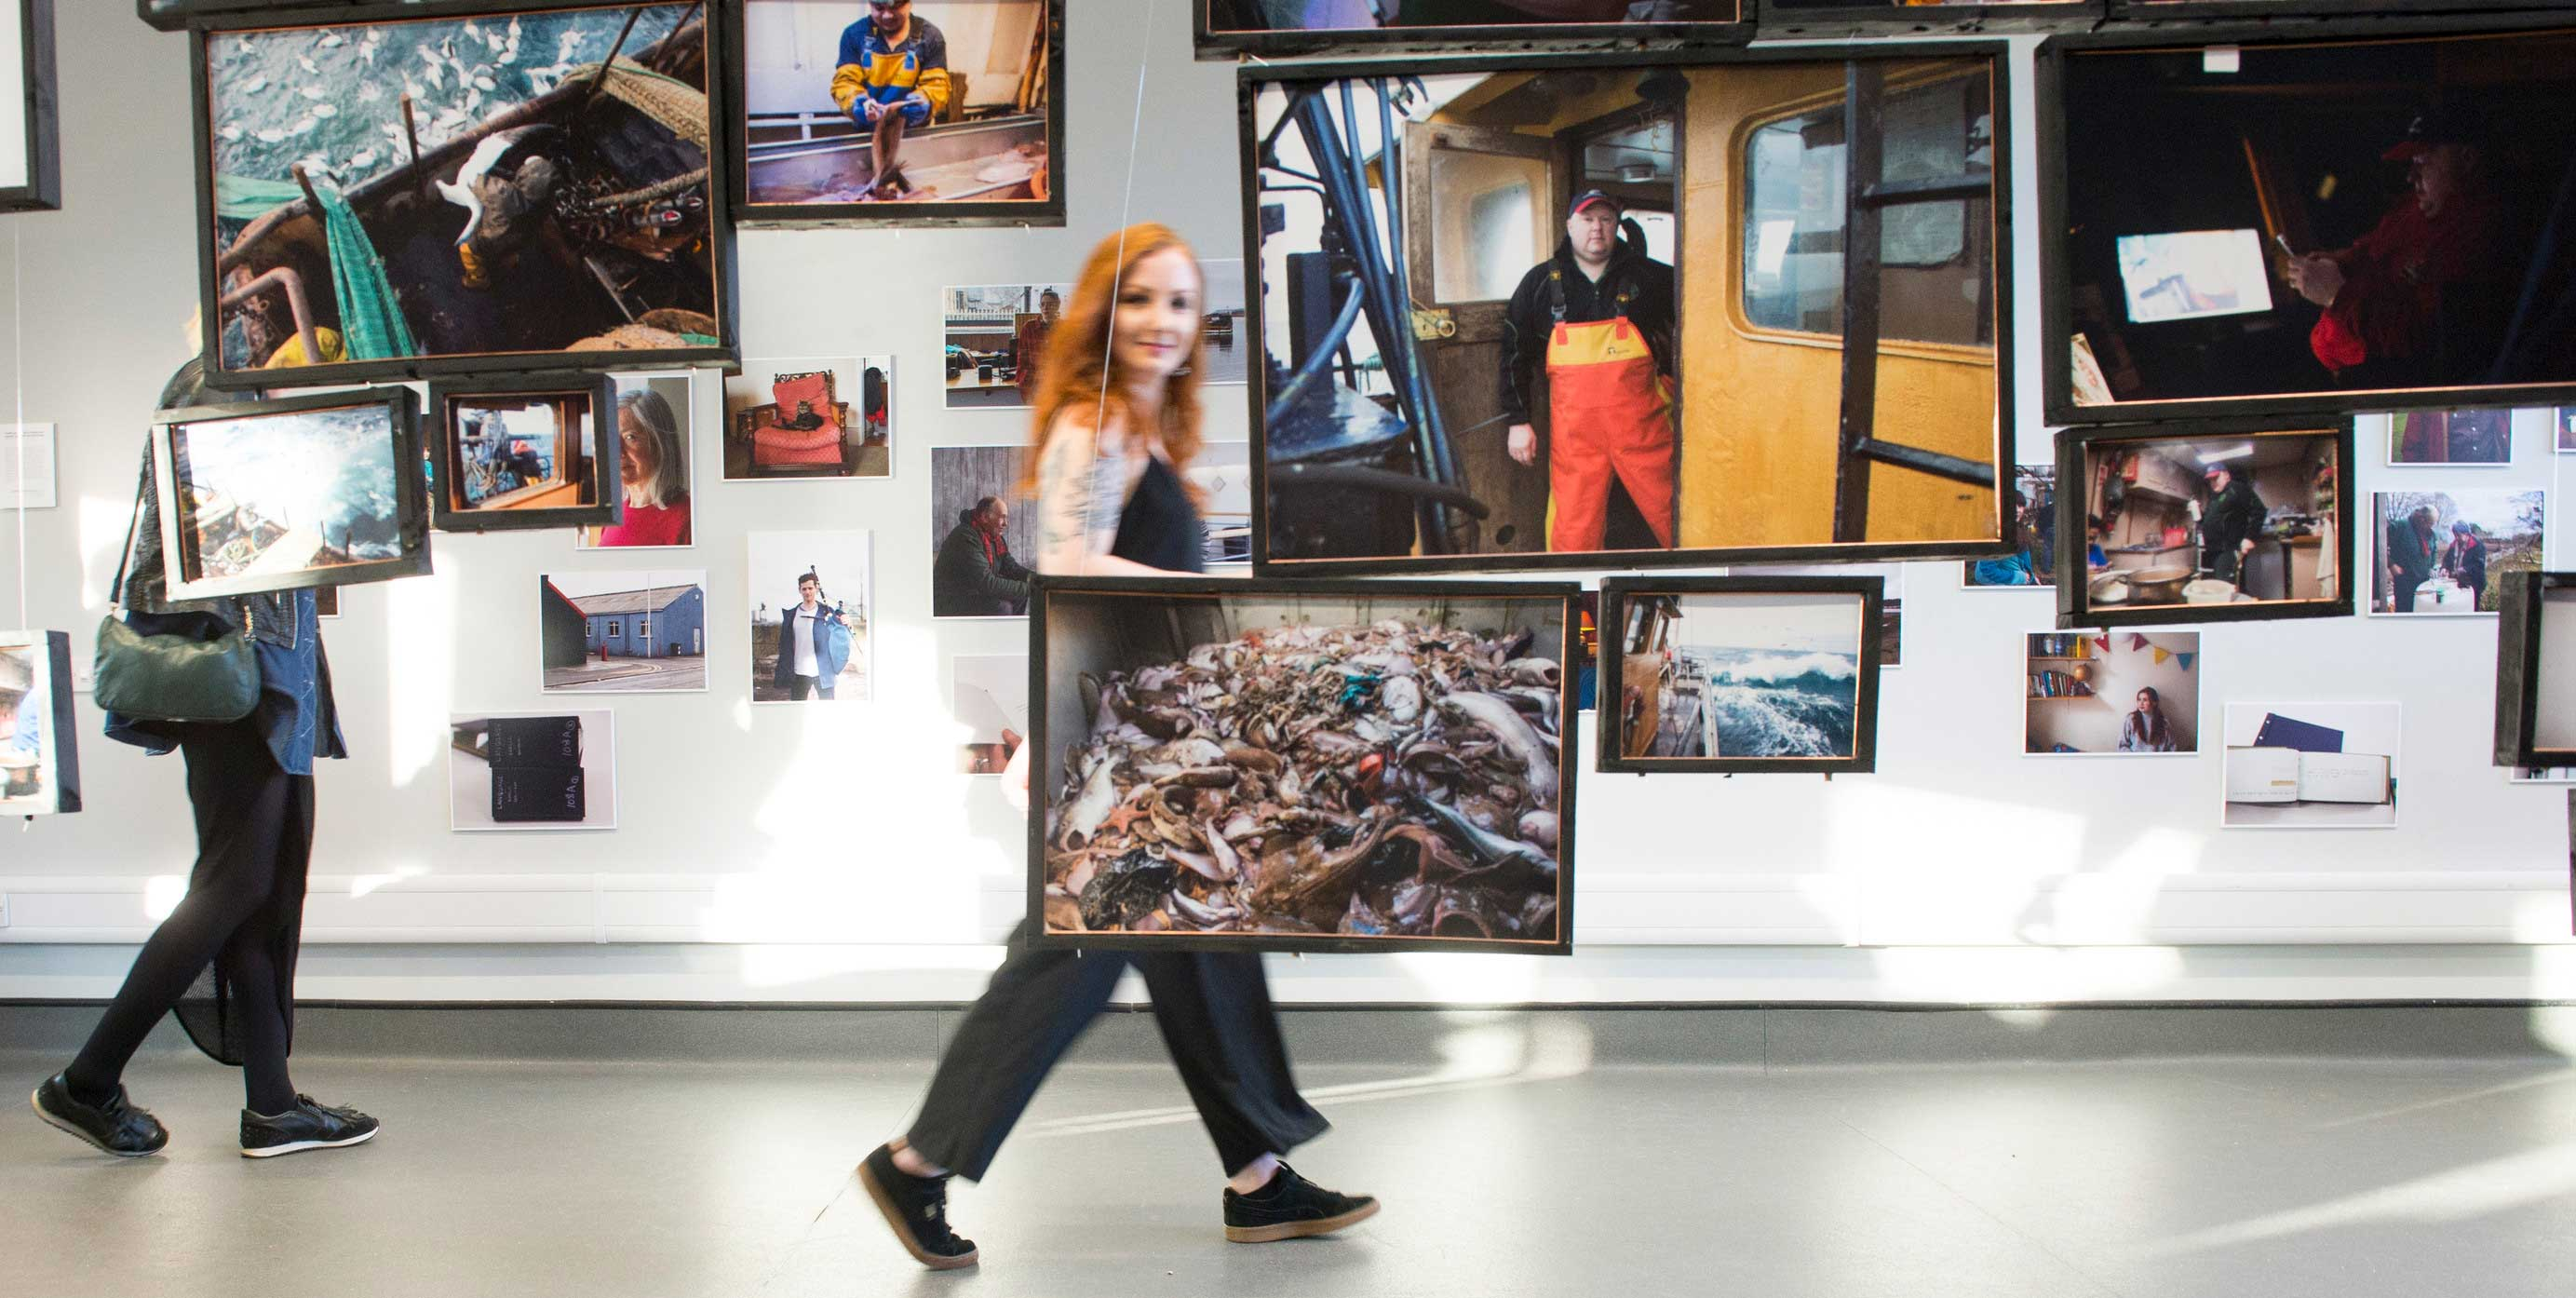 Edinburgh Napier Photography students at its Degree Show